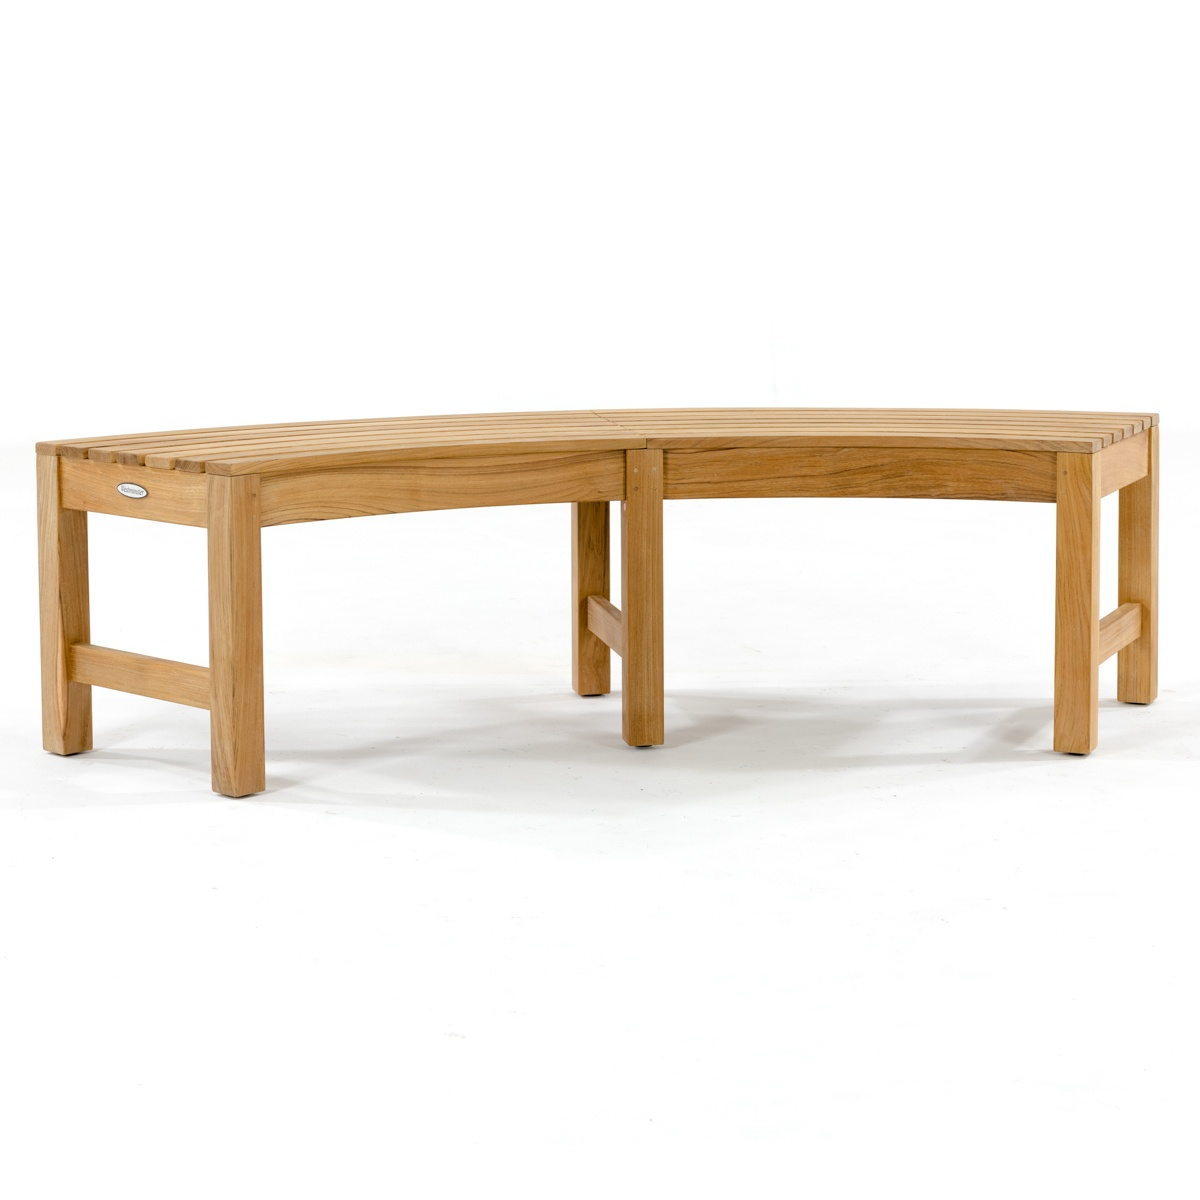 Buckingham Teak Backless Bench Westminster Teak